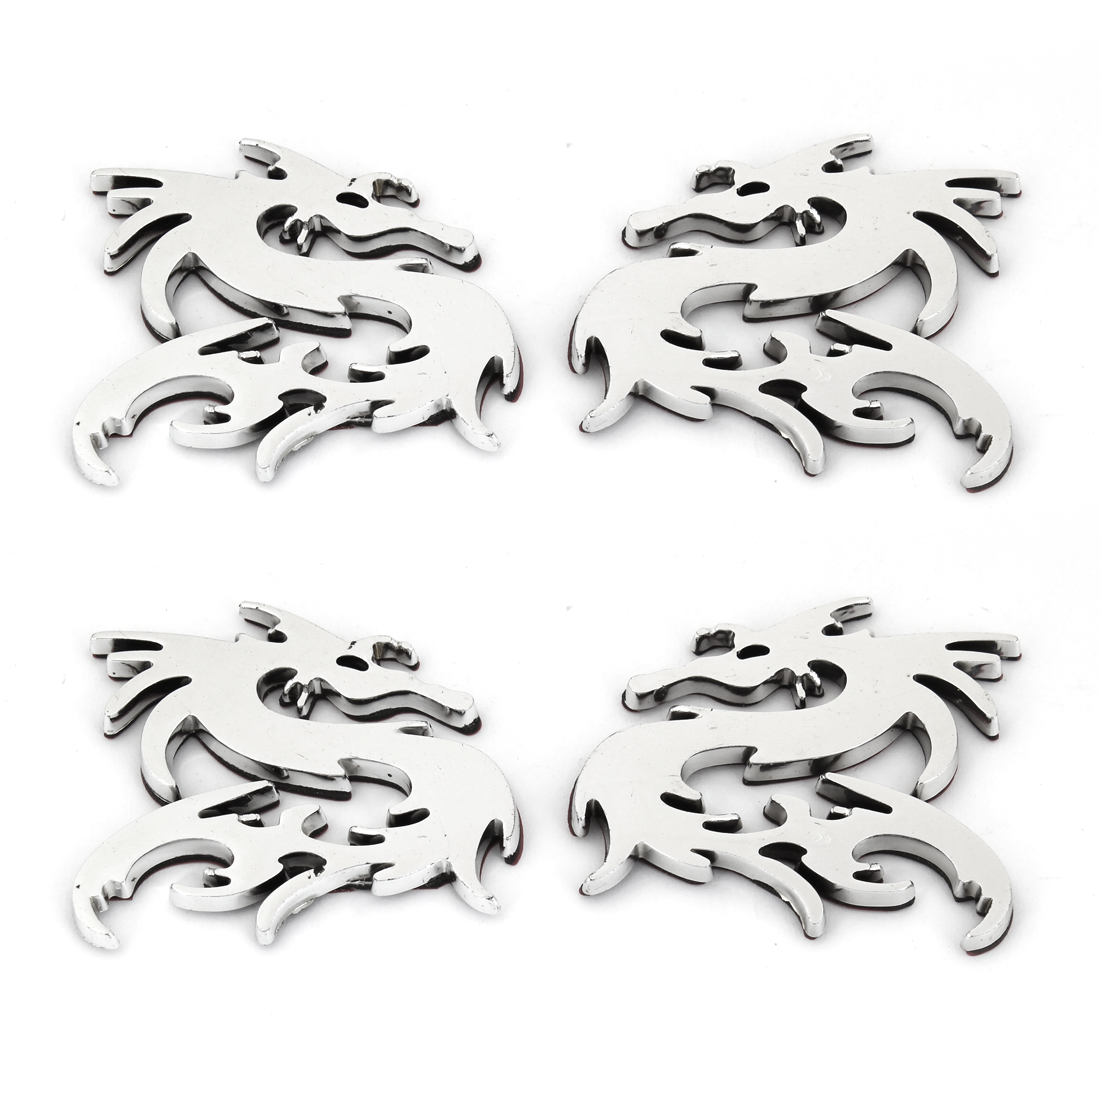 4PCS Silver Tone Plastic Dragon Shaped Adhesive Car Automobile Badge Stickers